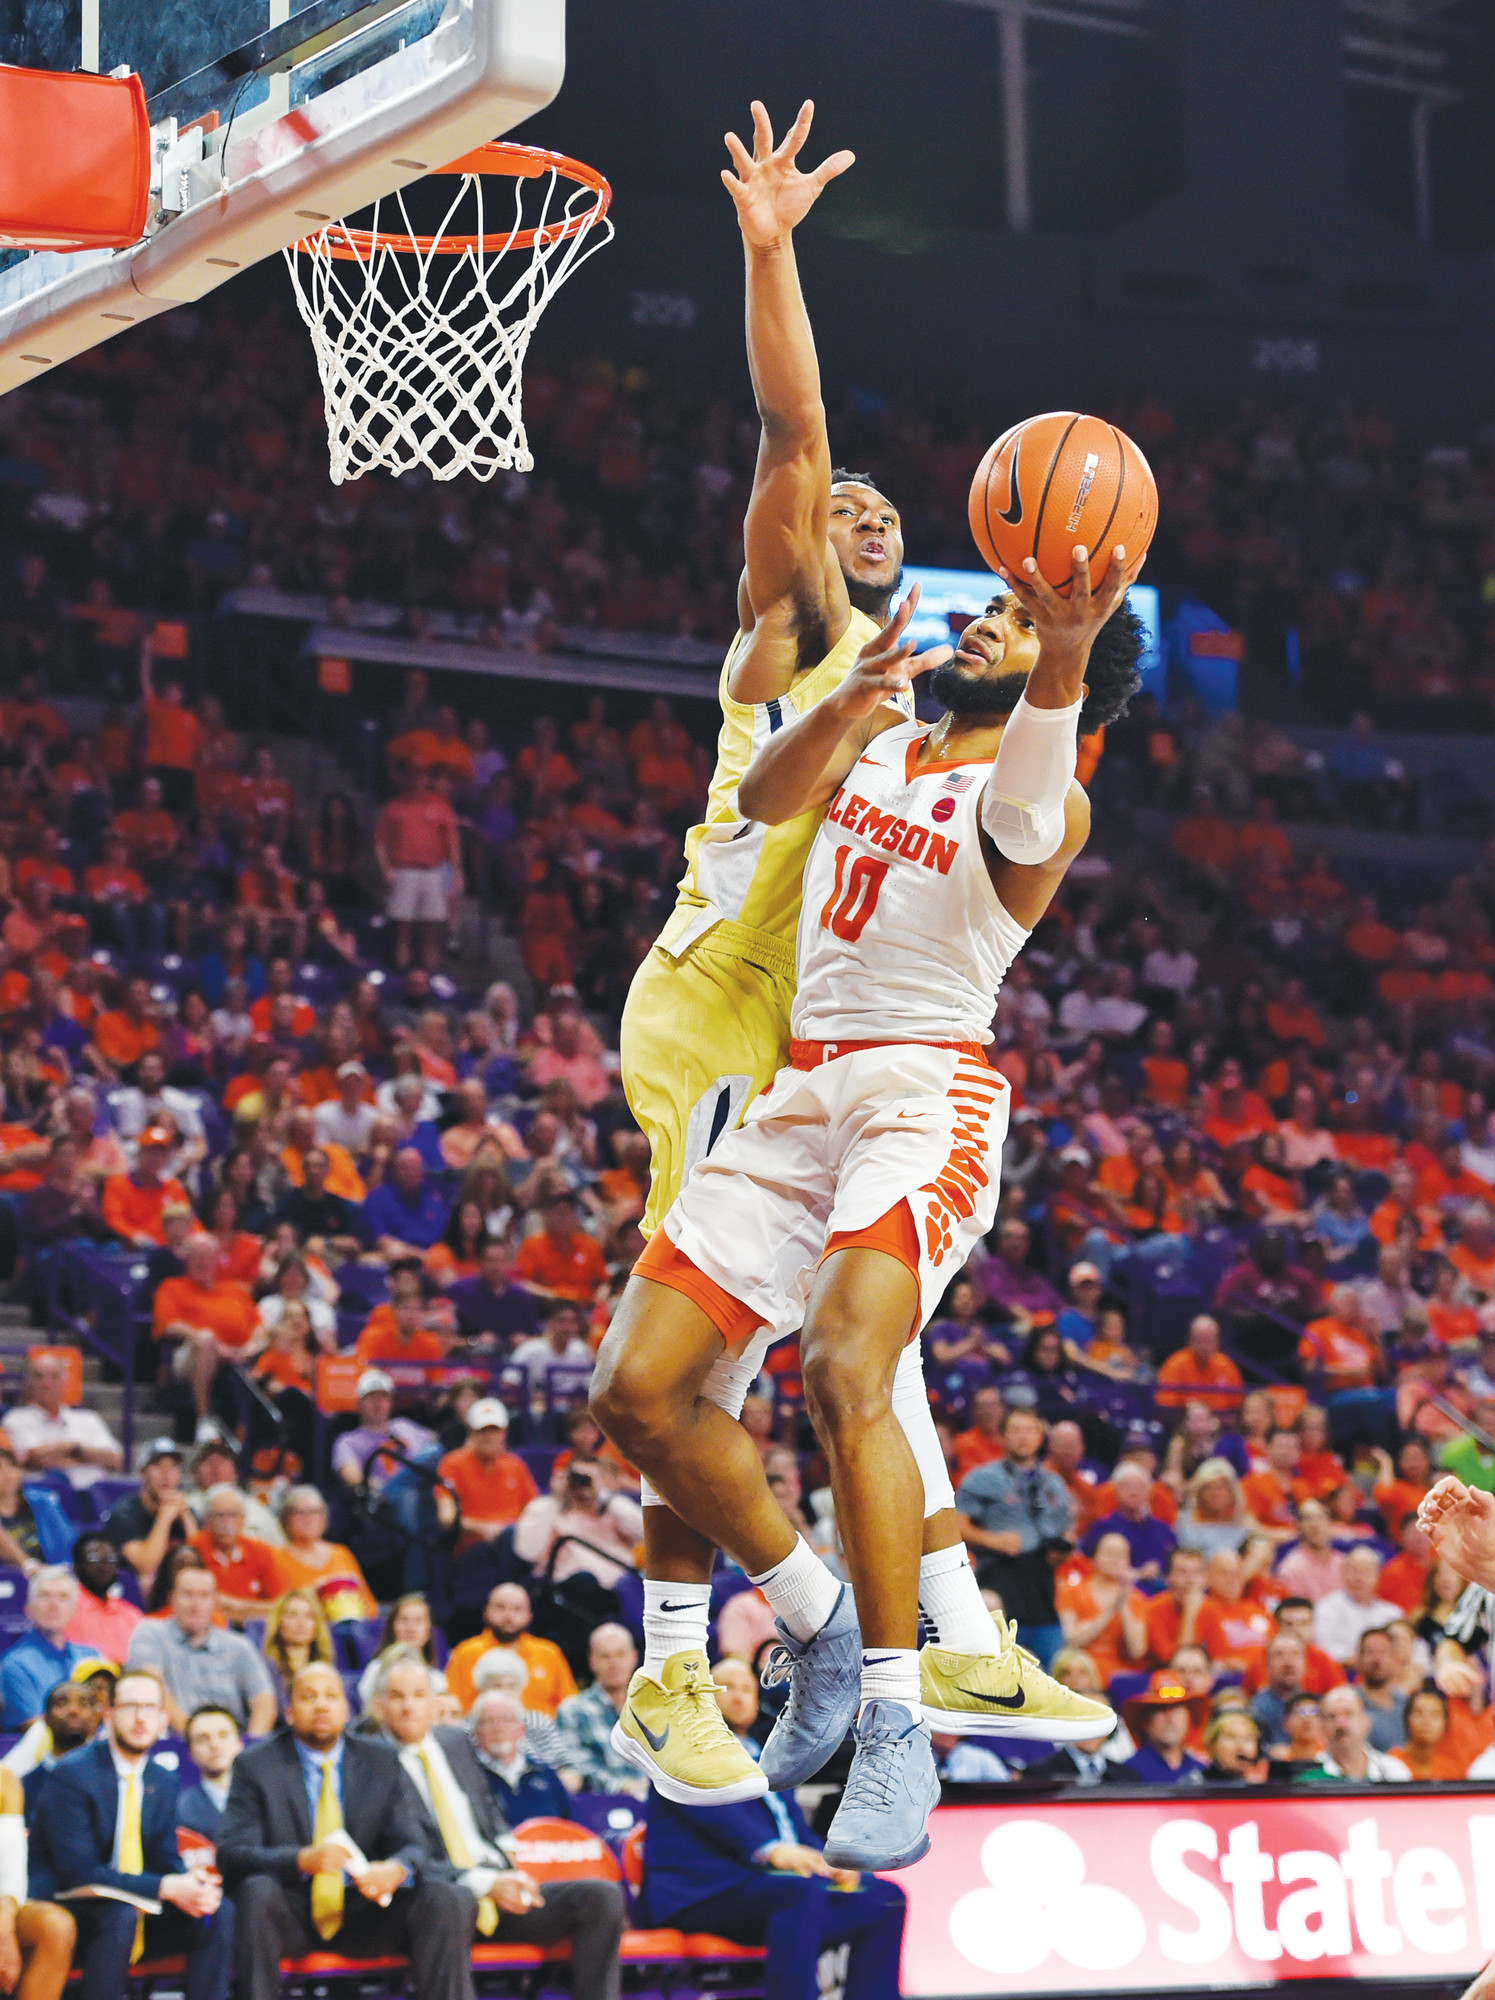 Clemson's Gabe DeVoe (10) drives to the basket while defended by Georgia Tech's Josh Okogie during the first half of the Tigers 75-67 victory over the Yellow Jackets on Saturday in Clemson.